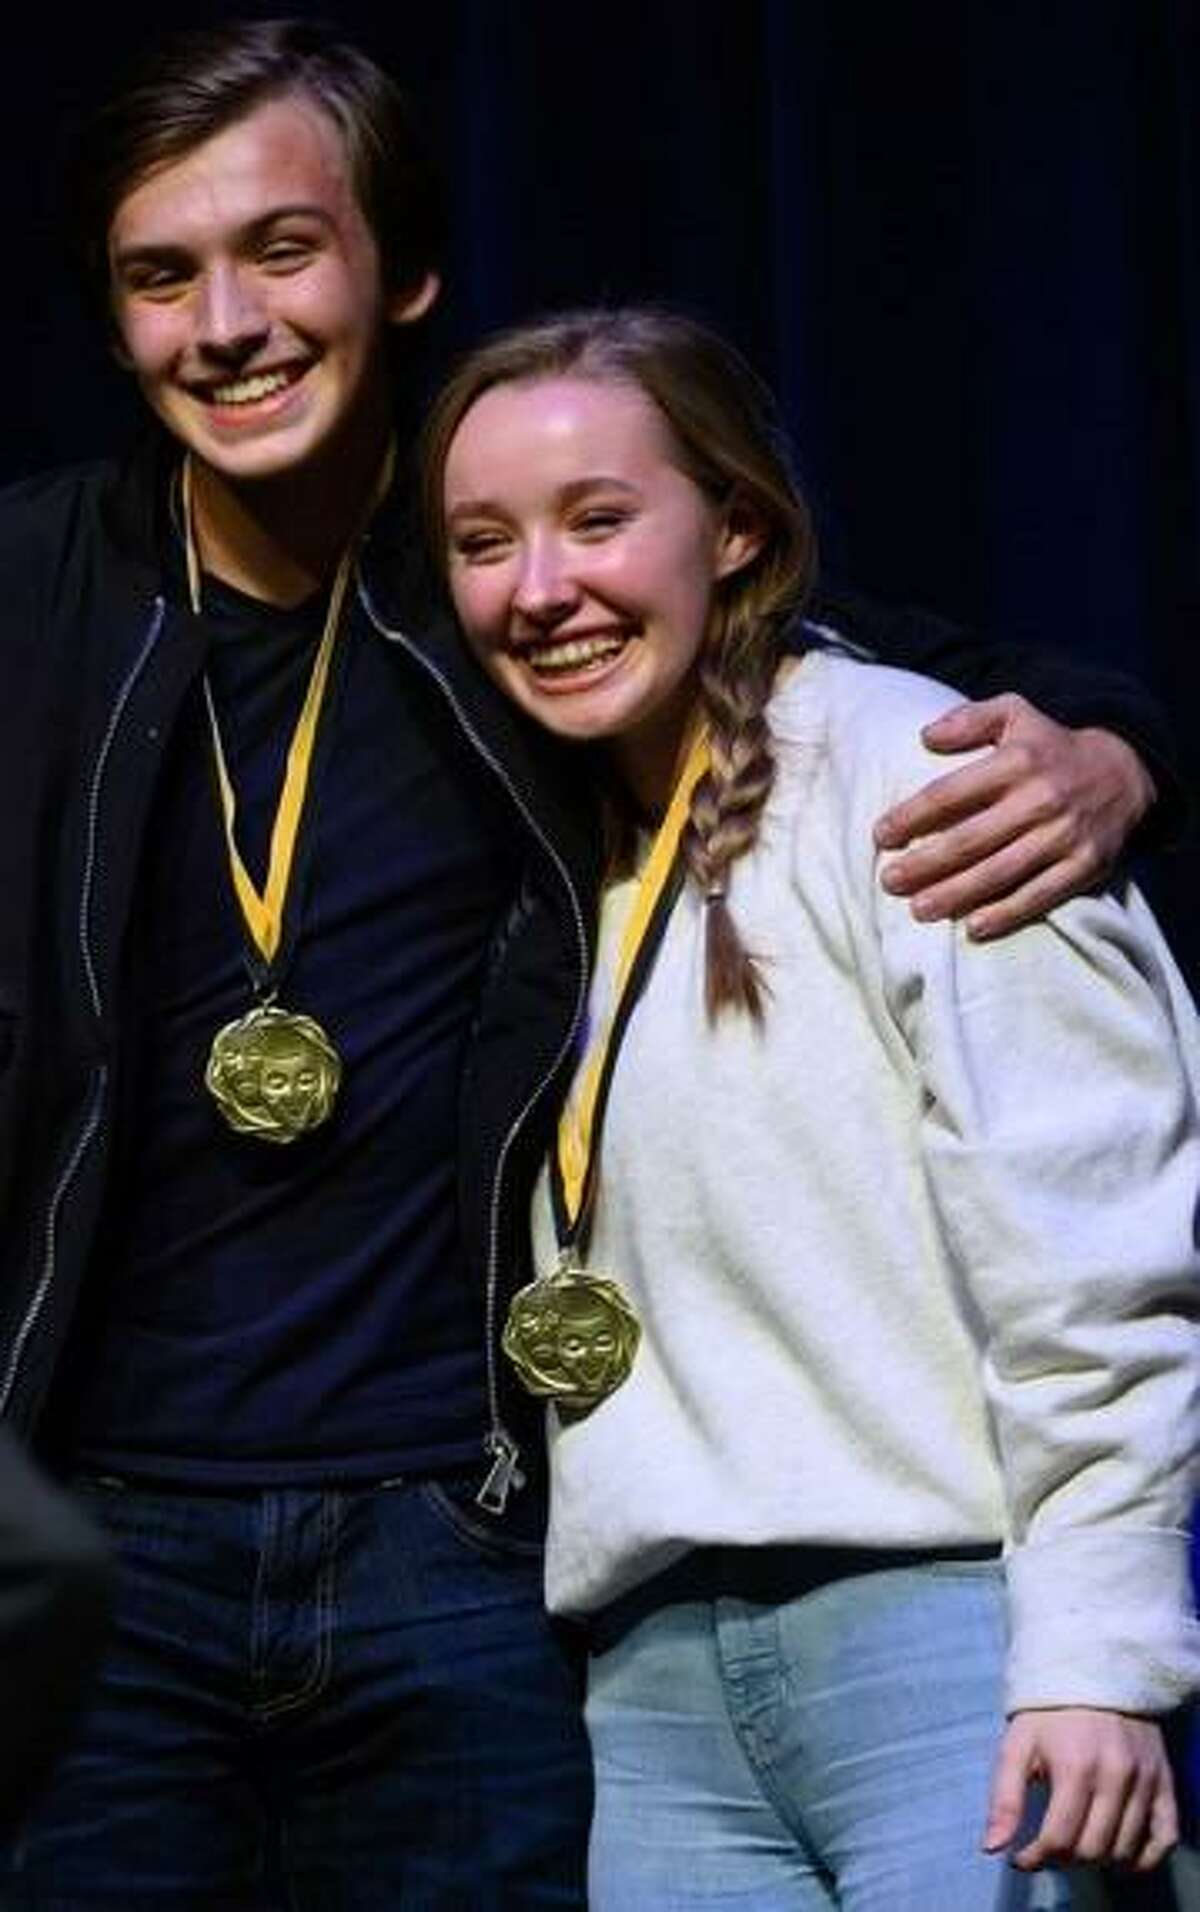 Brennan Vacek and Aedin Waldorf of Fort Bend Christian Academy win Best Actor and Best Actress at the 2019 TAPPS One-Act District competition for their roles in